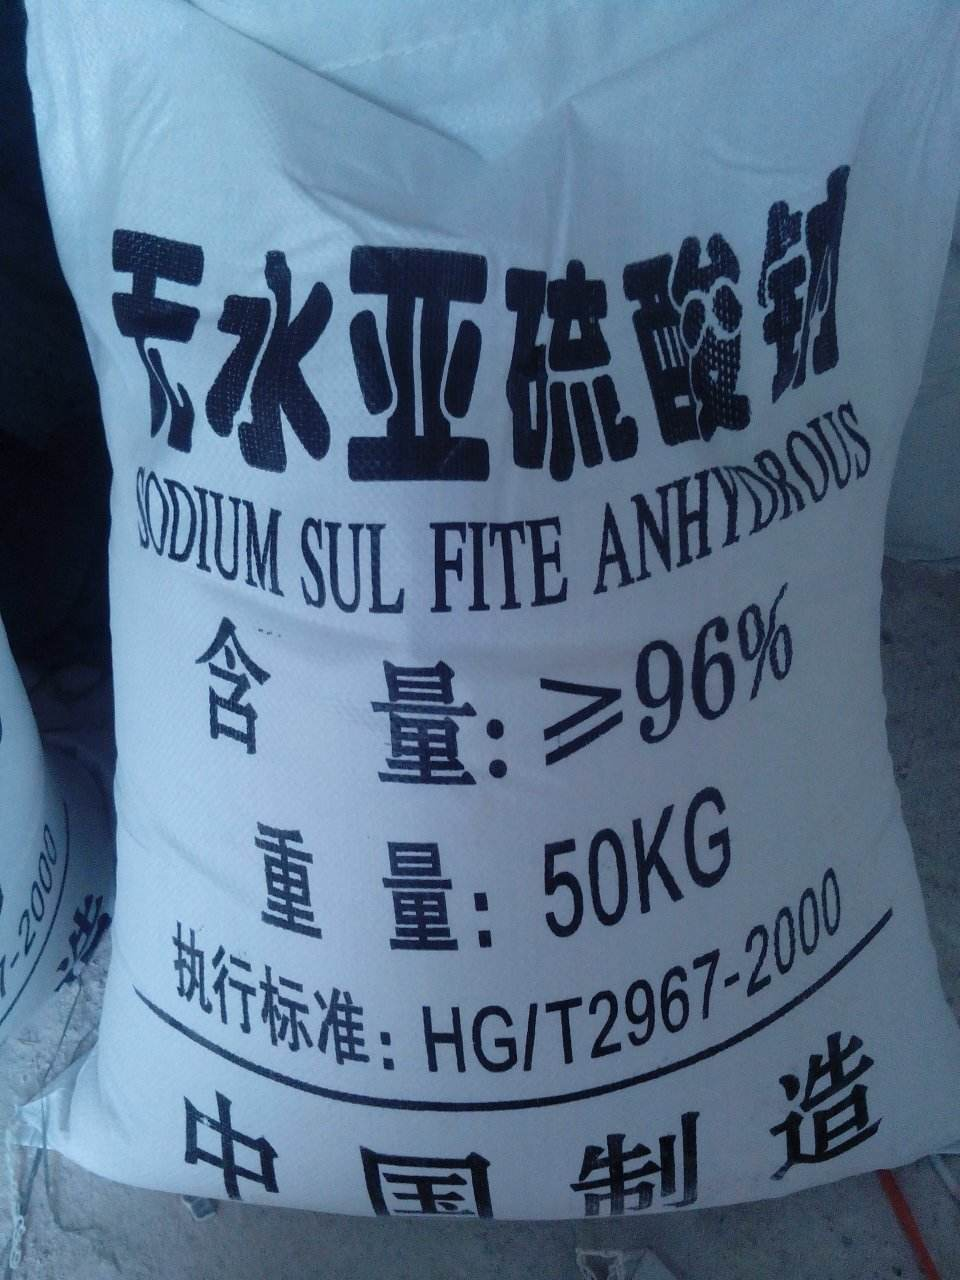 Sodium sulfite water treatment